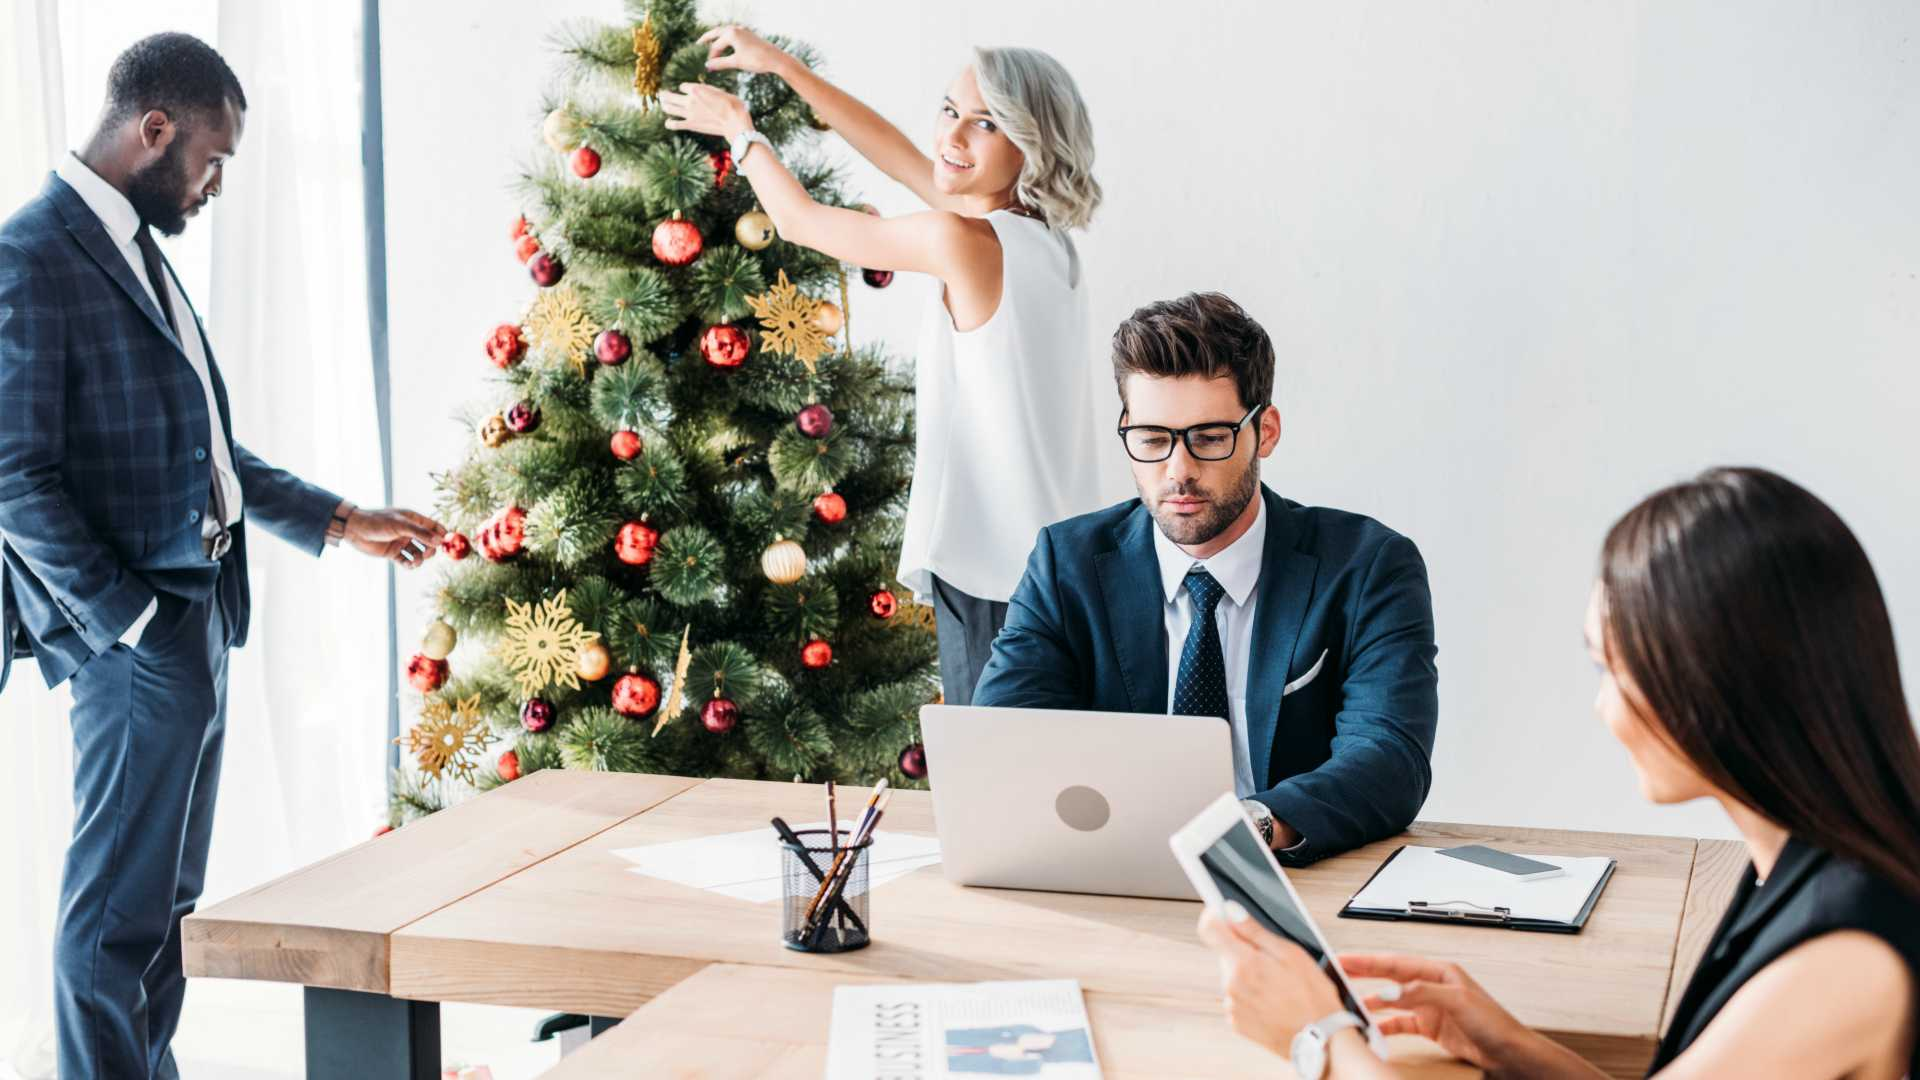 employees working and decorating a Christmas tree in an open office